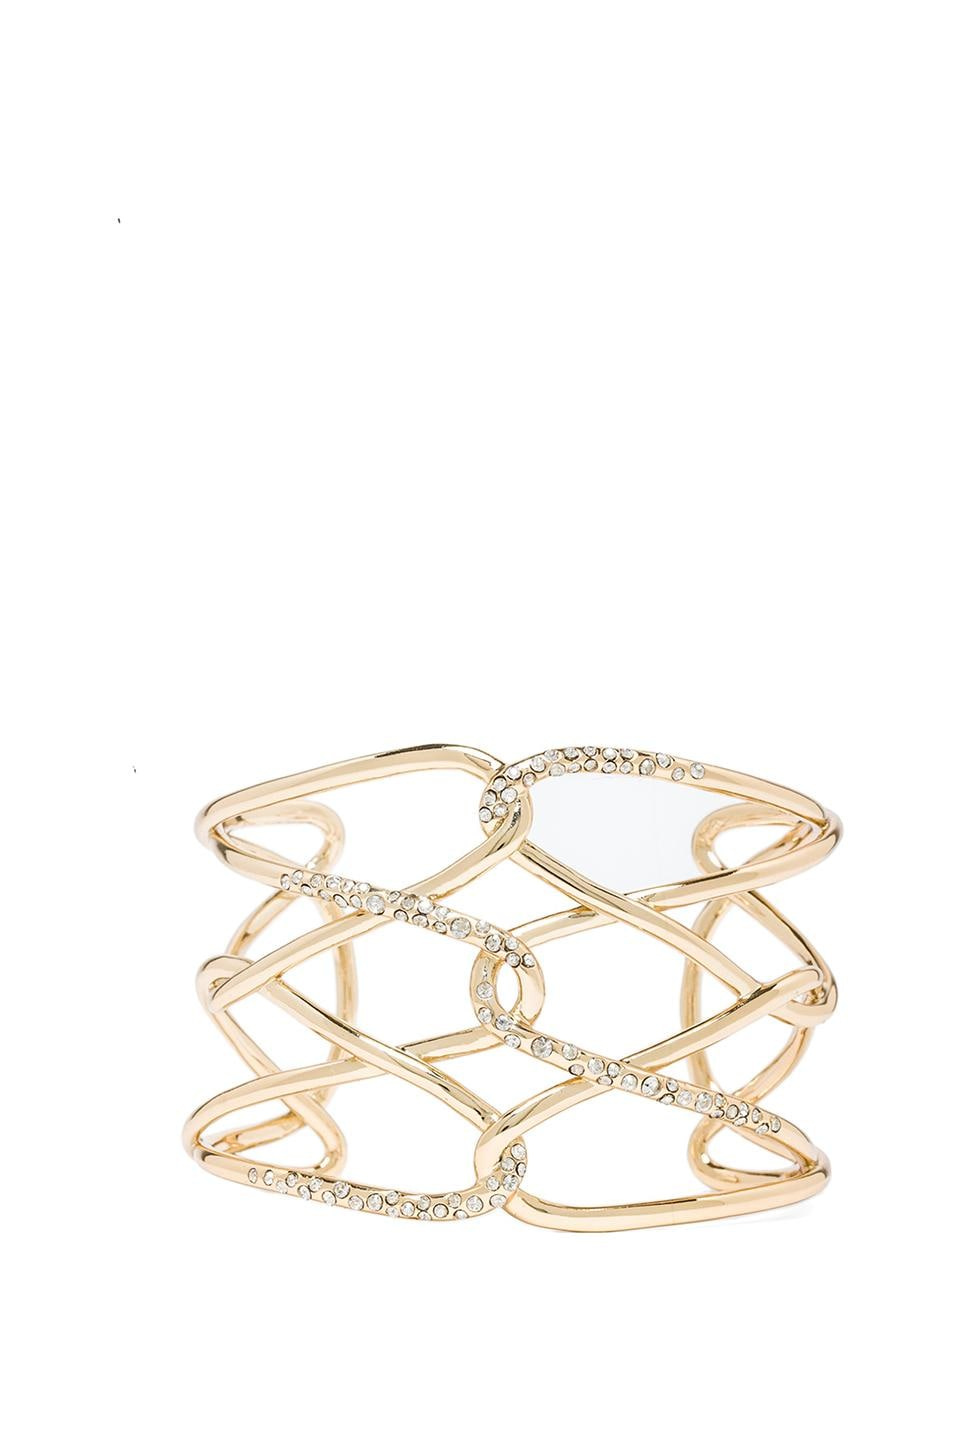 Alexis Bittar Liquid Barbed Cuff w/ Pave Crystals in Gold